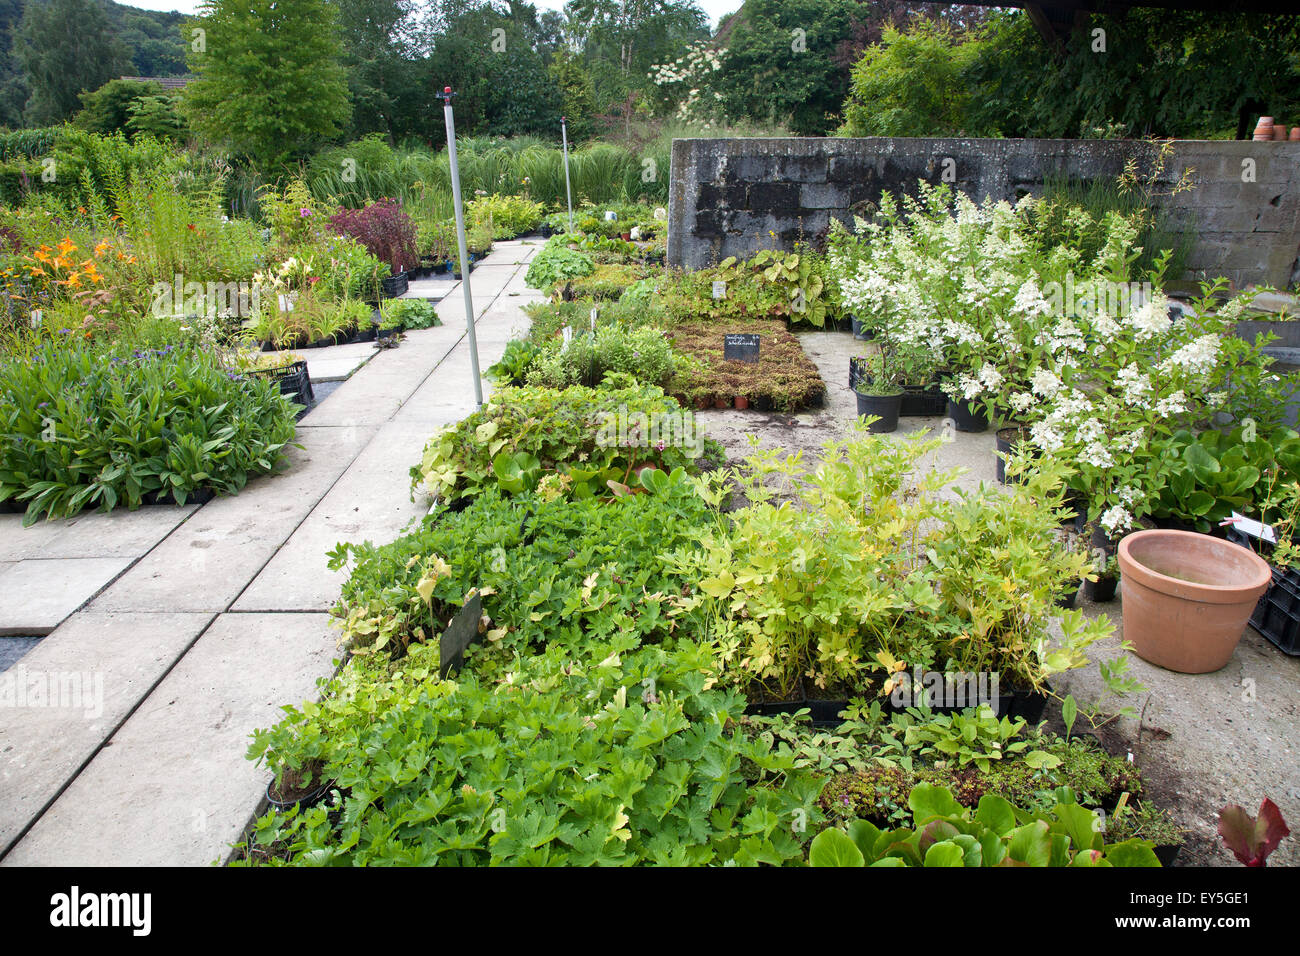 Perennials in a nursery - Stock Image